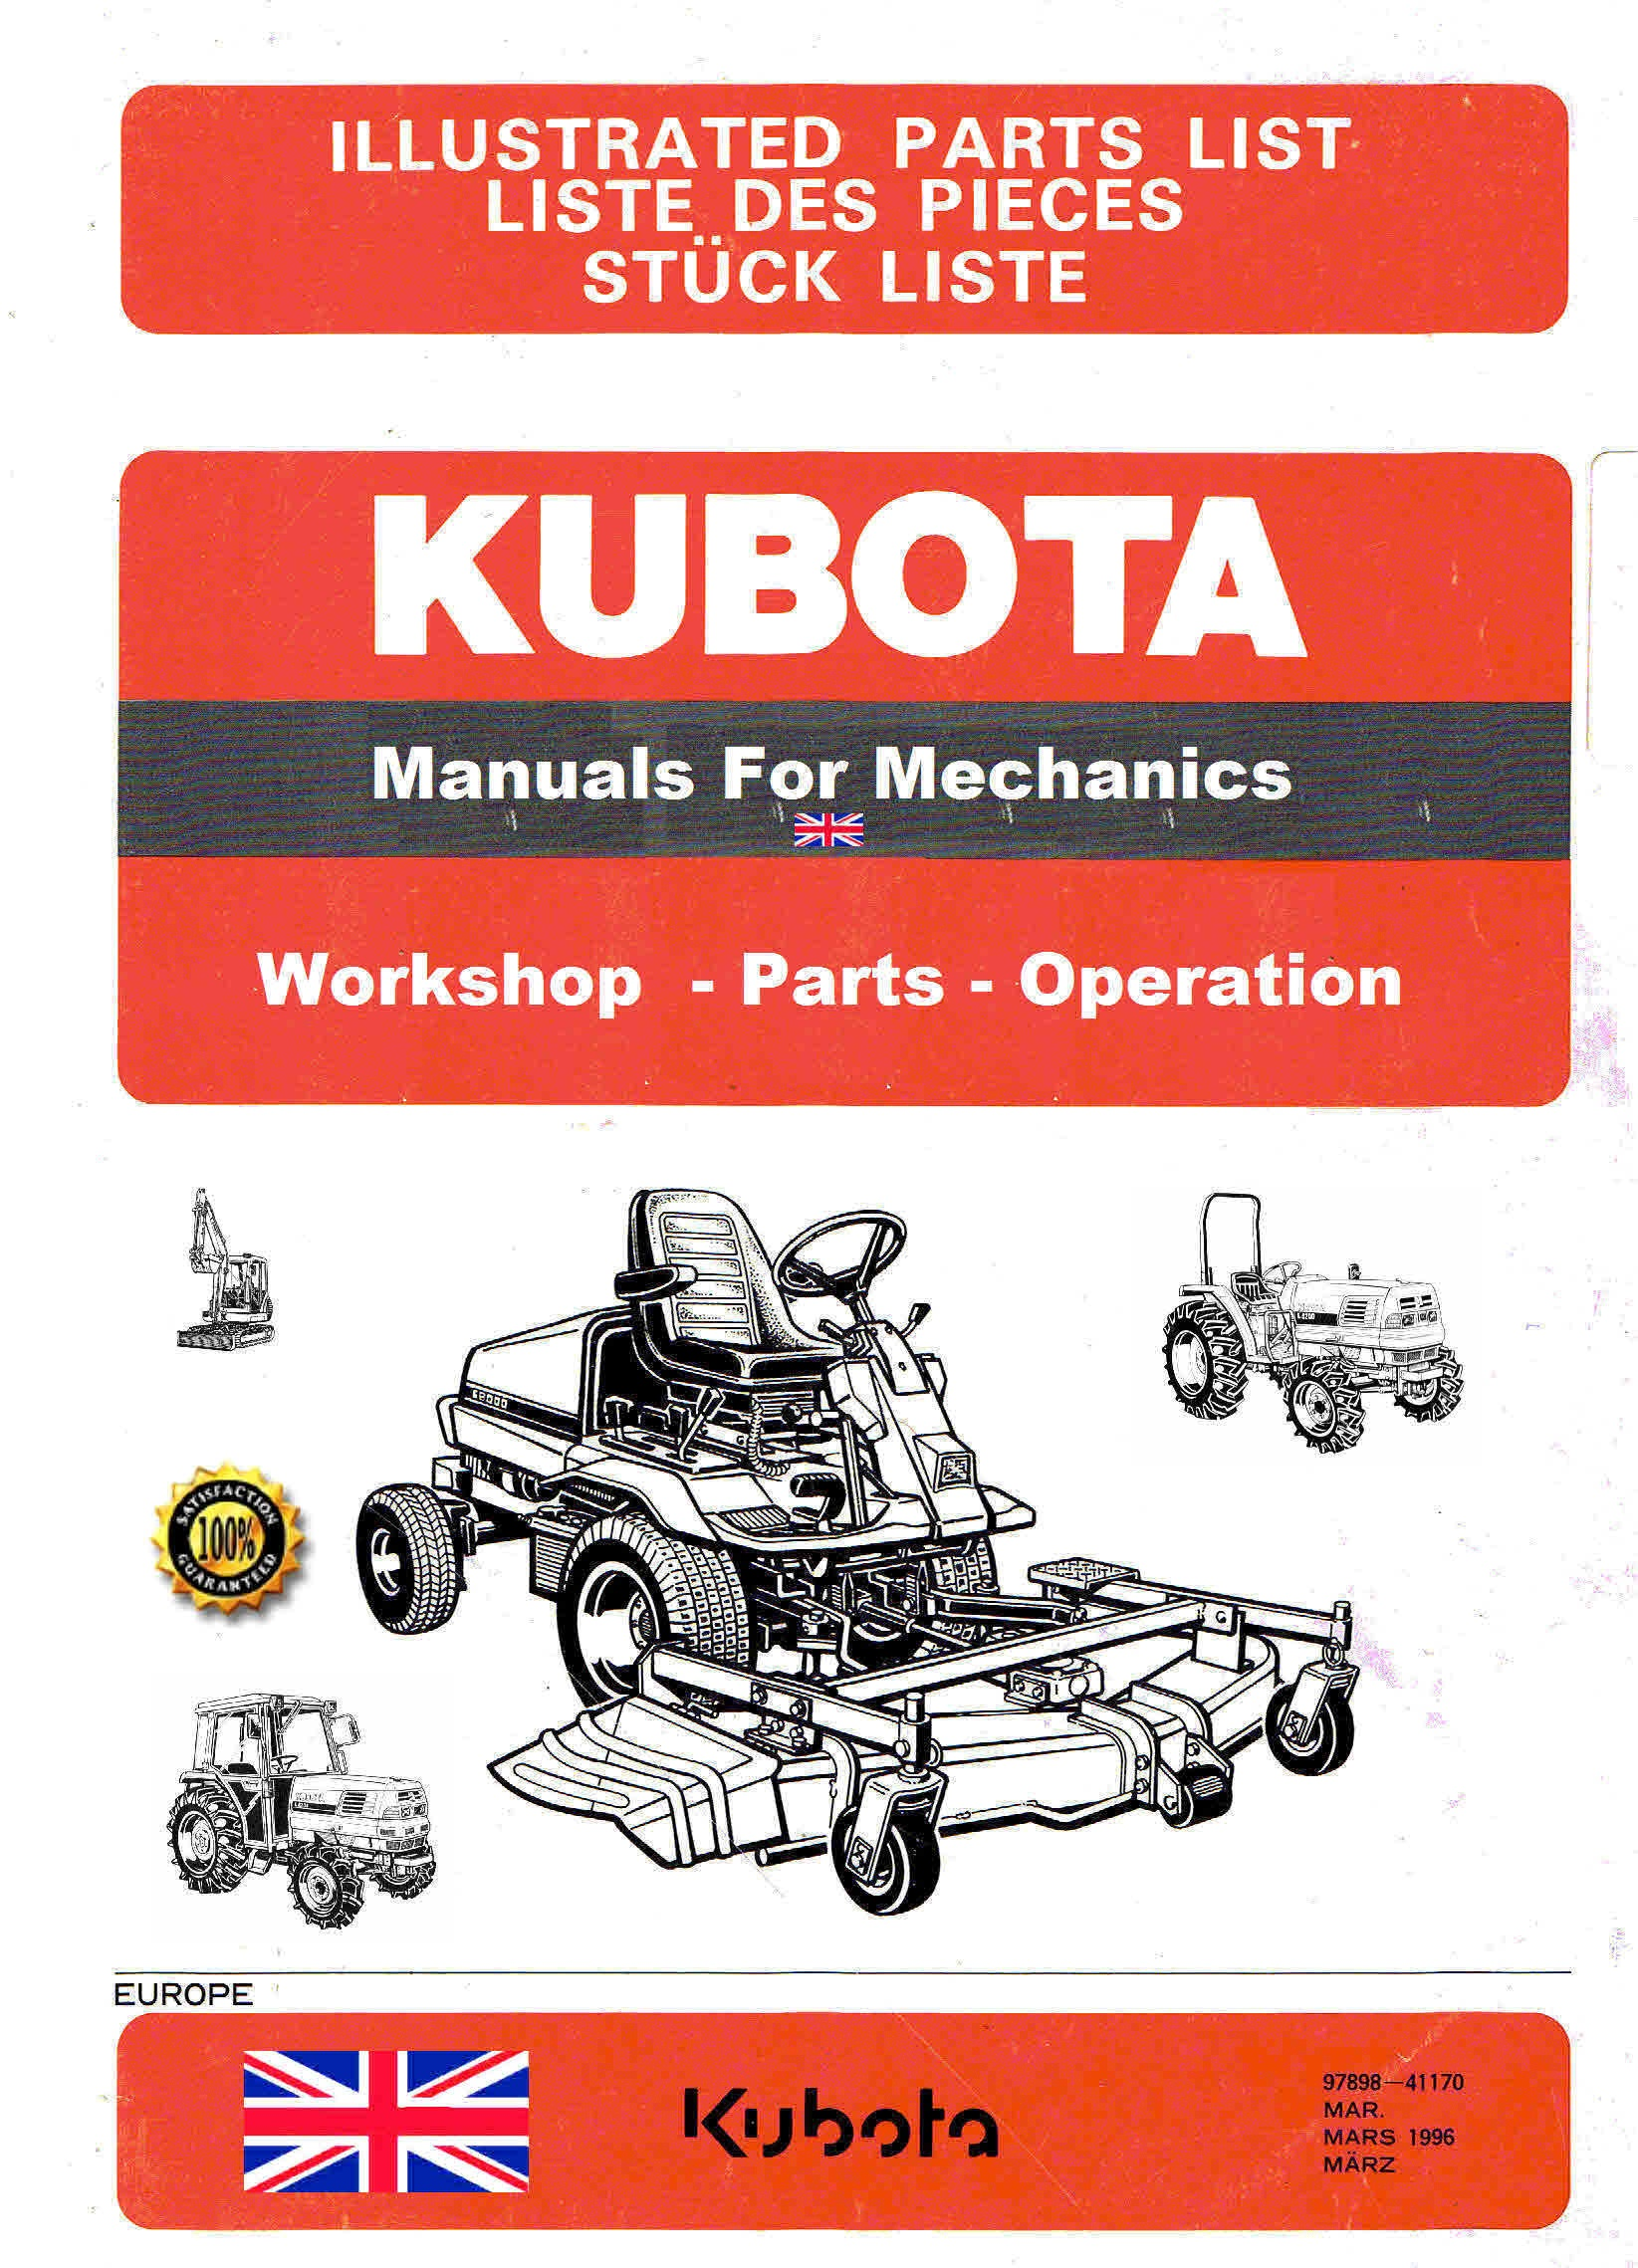 hight resolution of kubota manuals for mechanics the largest plant mechanics kubota manuals archive dvd there is 4 gig of service manuals illustrated part manuals with